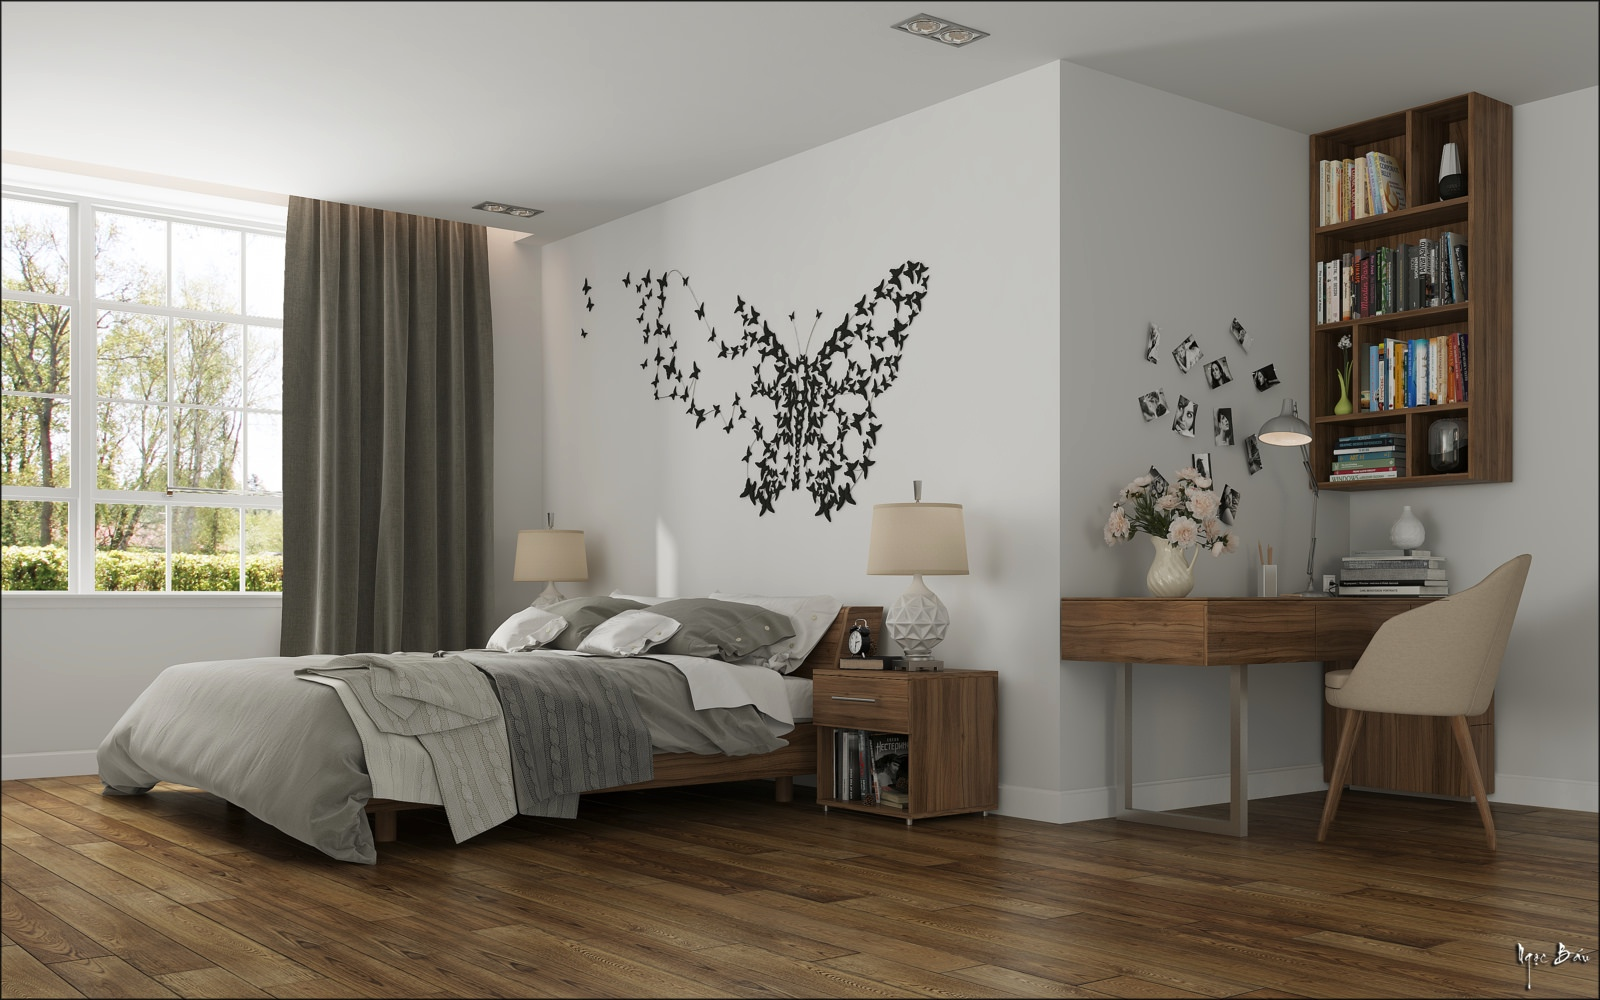 Bedroom butterfly wall art interior design ideas for Decoration murale 1 wall